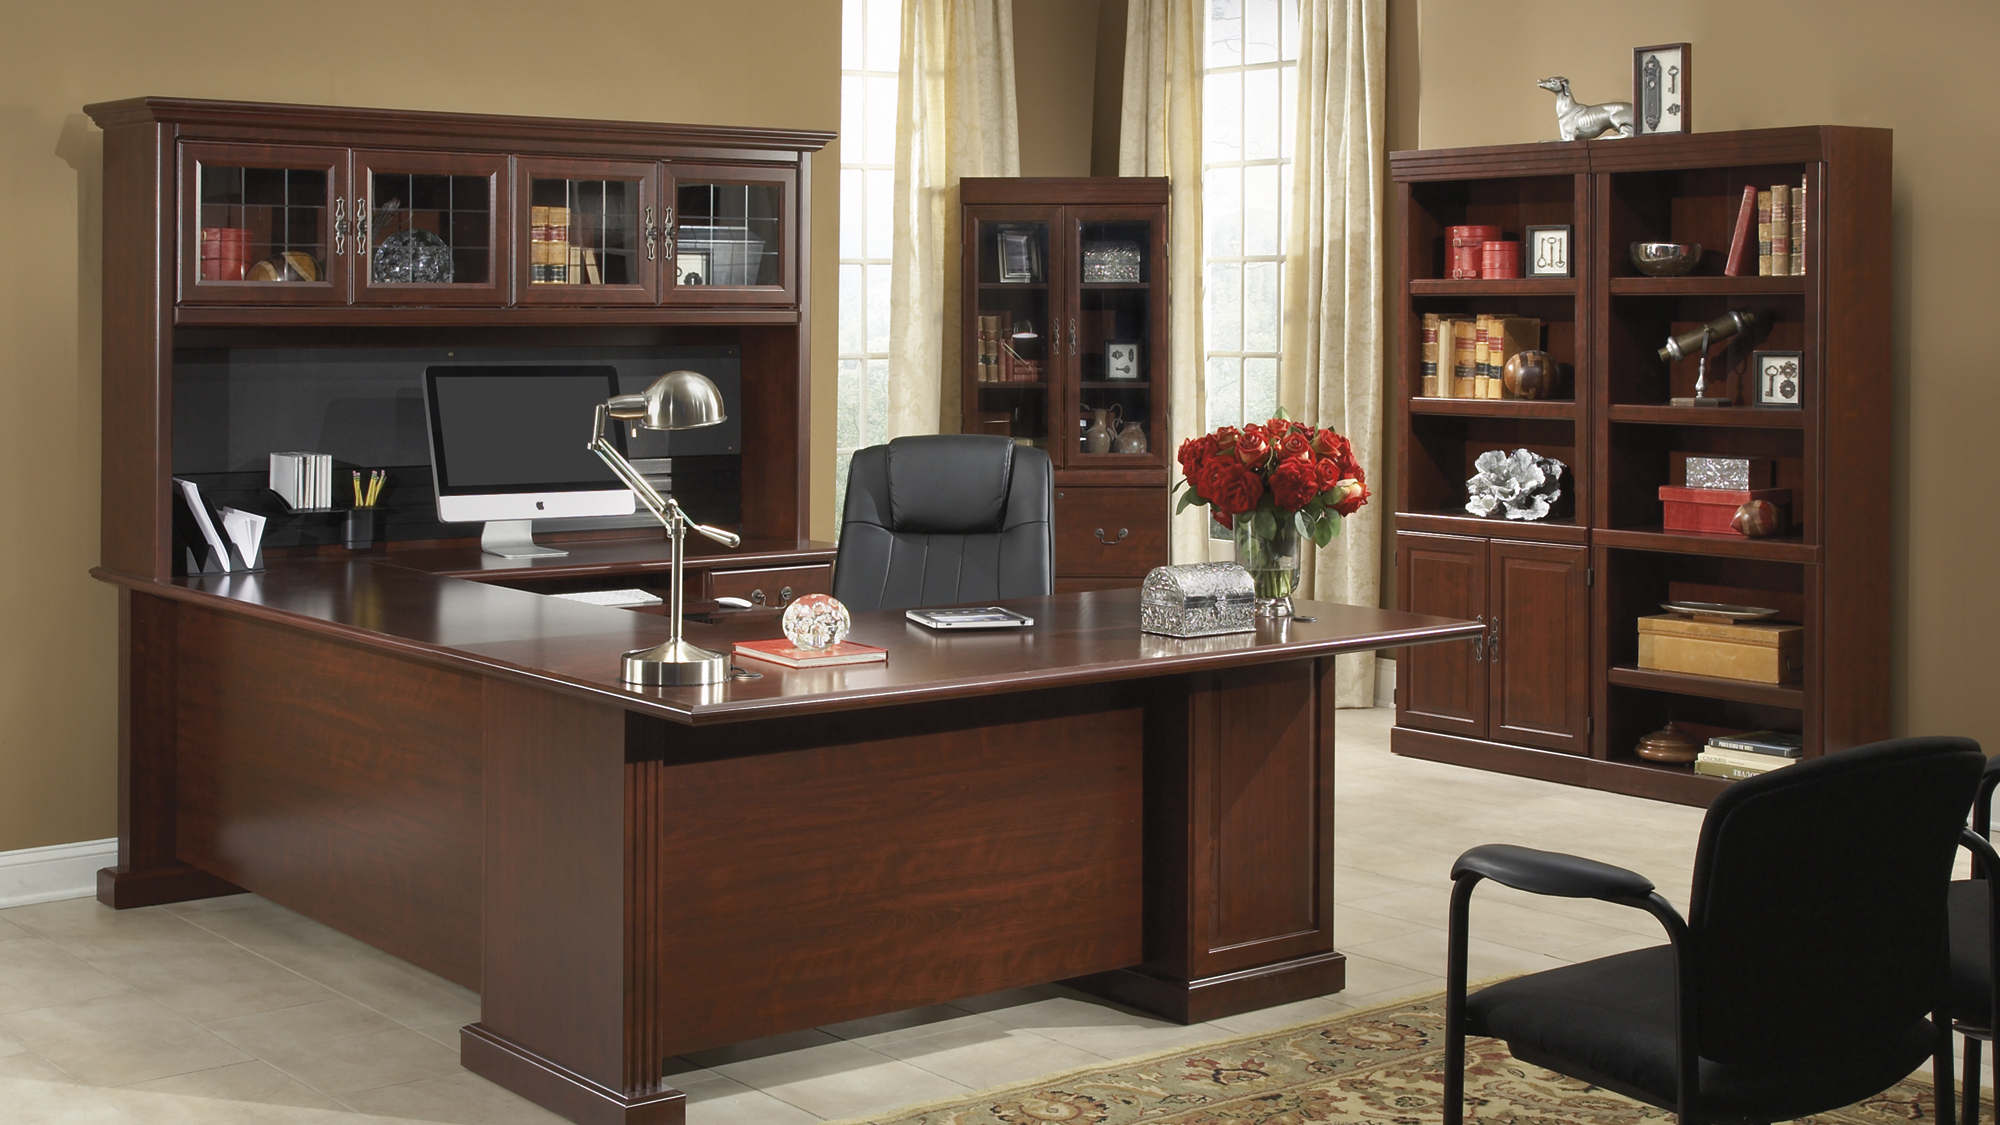 Home office furniture Heritage Hill Collection: filing cabinet, home office desk with bookshelves and ZOZPBQW